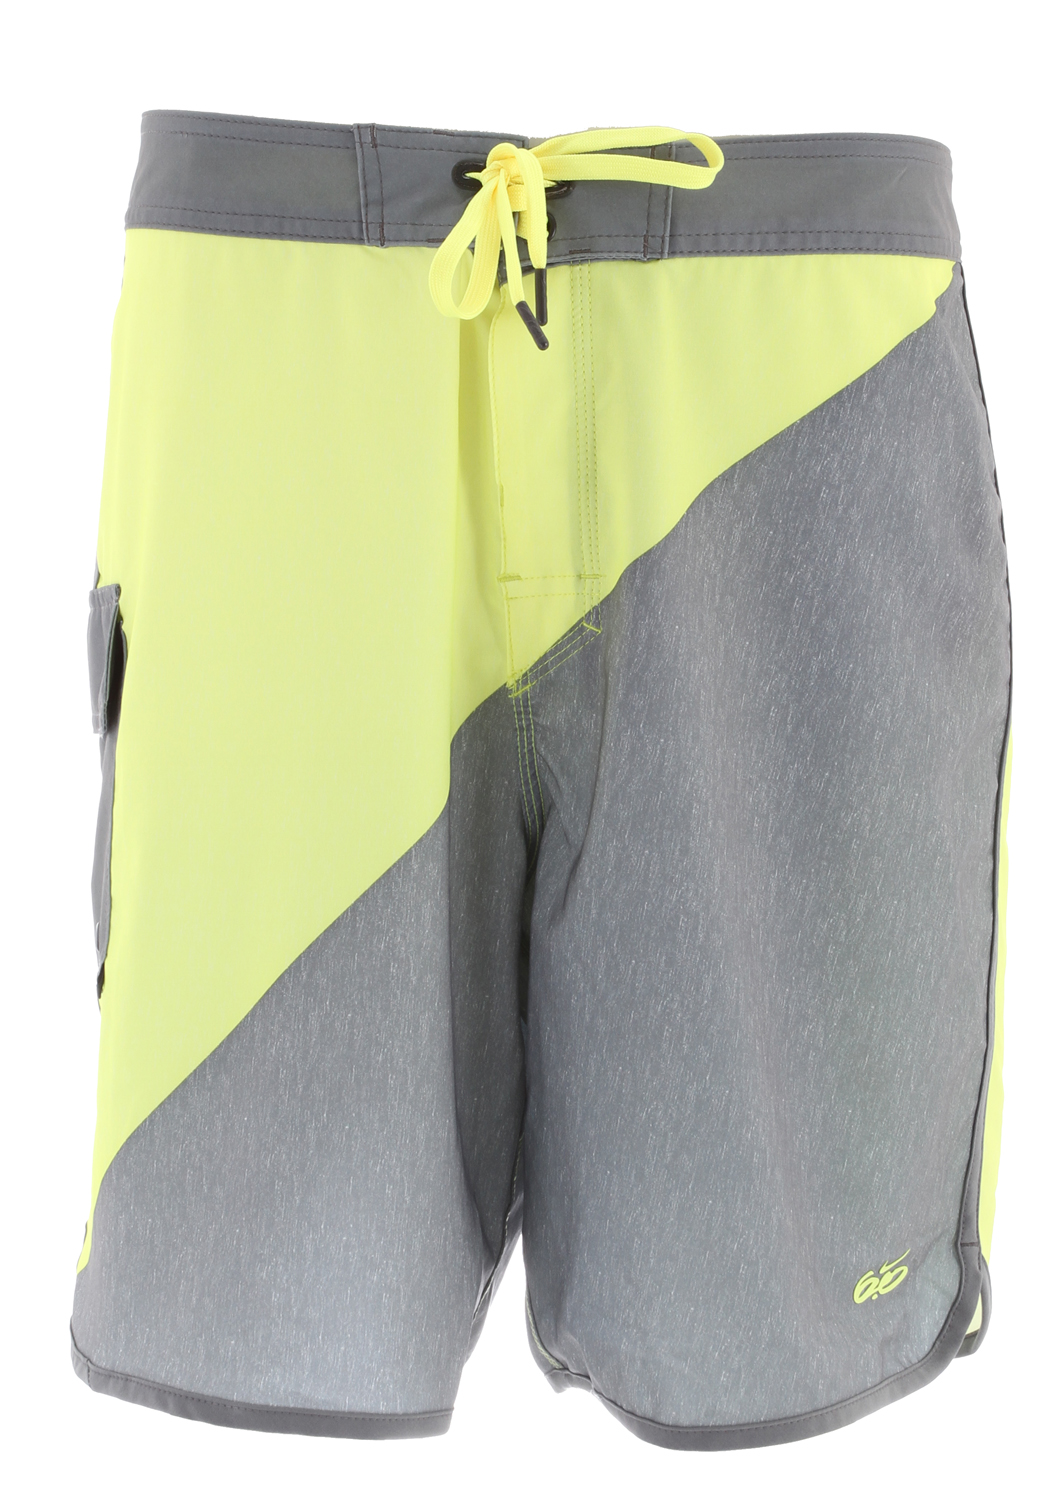 Skateboard Made with stretch fabric for excellent mobility, the Nike 6.0 Gym Print Men's Boardshorts deliver comfort in and out of the water. Bold color contrast lends these shorts a sharp look that stands out.Key Features of the Nike 6.0 Gym Boardshorts: Lace-up closure at waist for an adjustable fit Side flap pocket for secure storage Color-block pattern for style Logo screen print at left hem Fabric: 85% recycled polyester/15% spandex Machine wash - $65.95